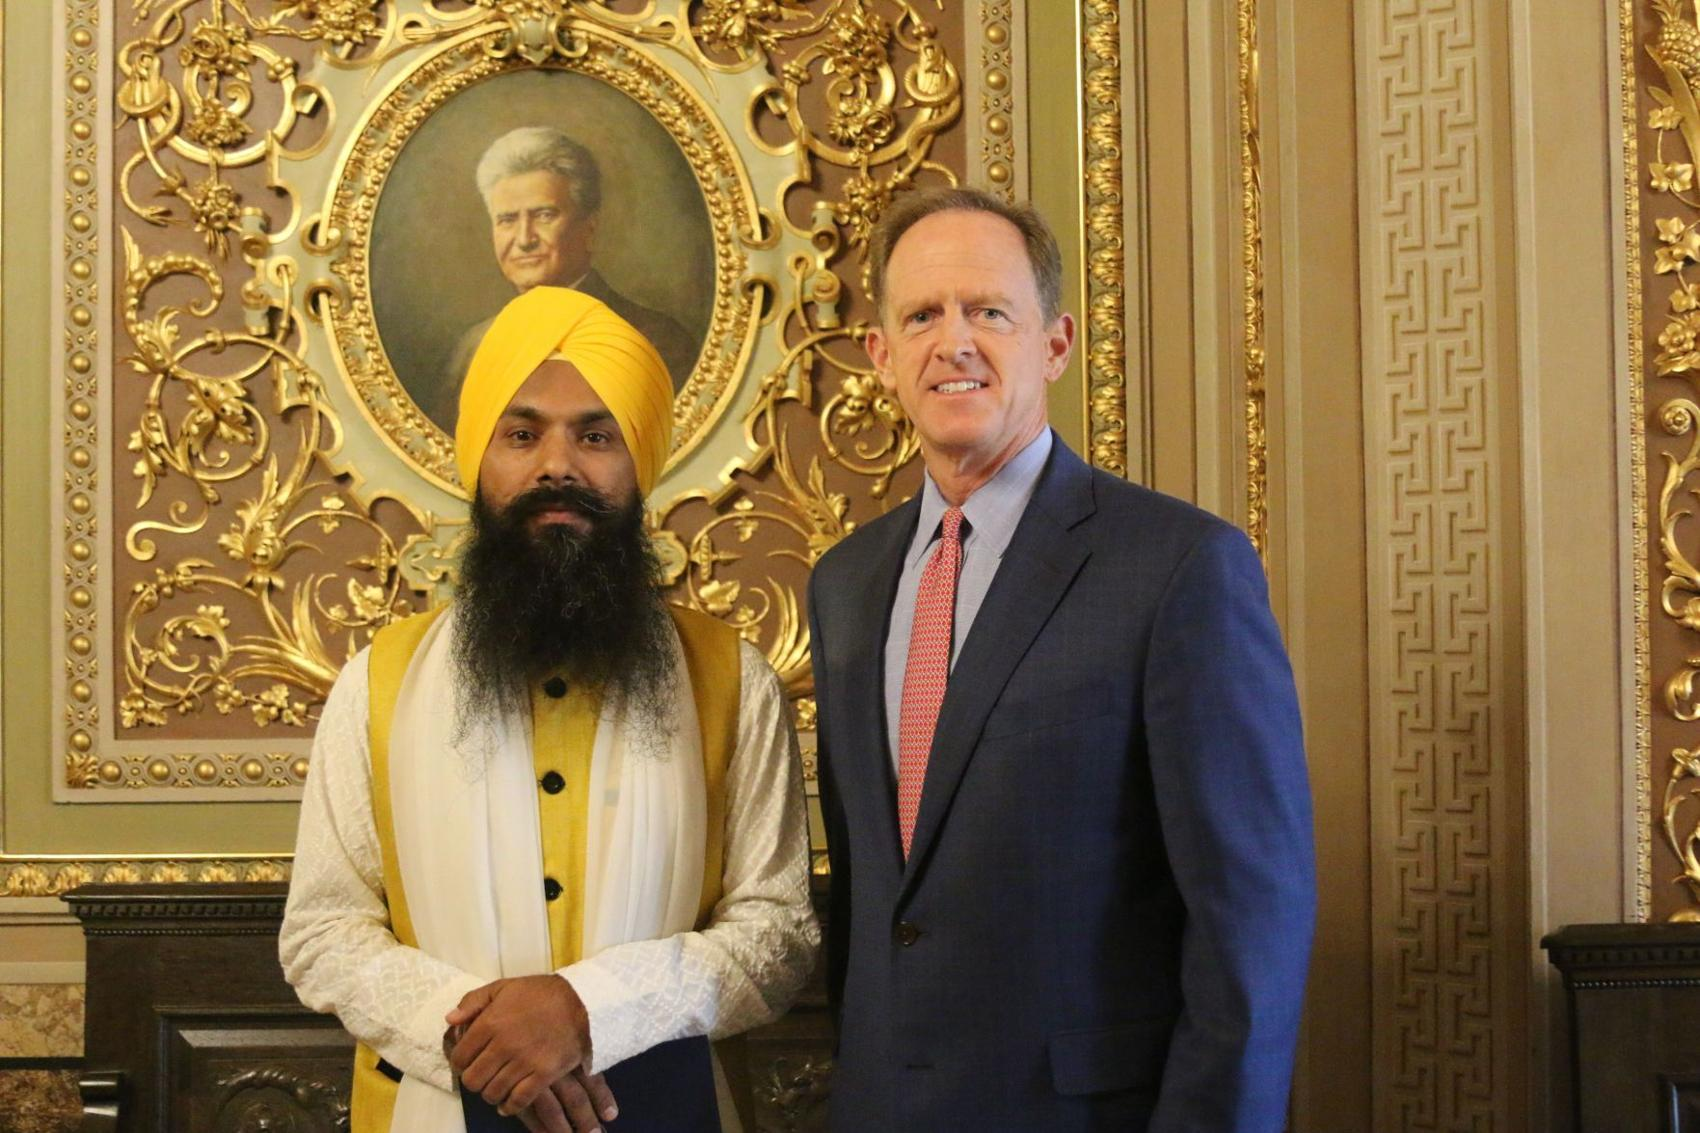 Making History: Upper Darby Sikhs Lead the Prayer in the U.S. Senate Chamber